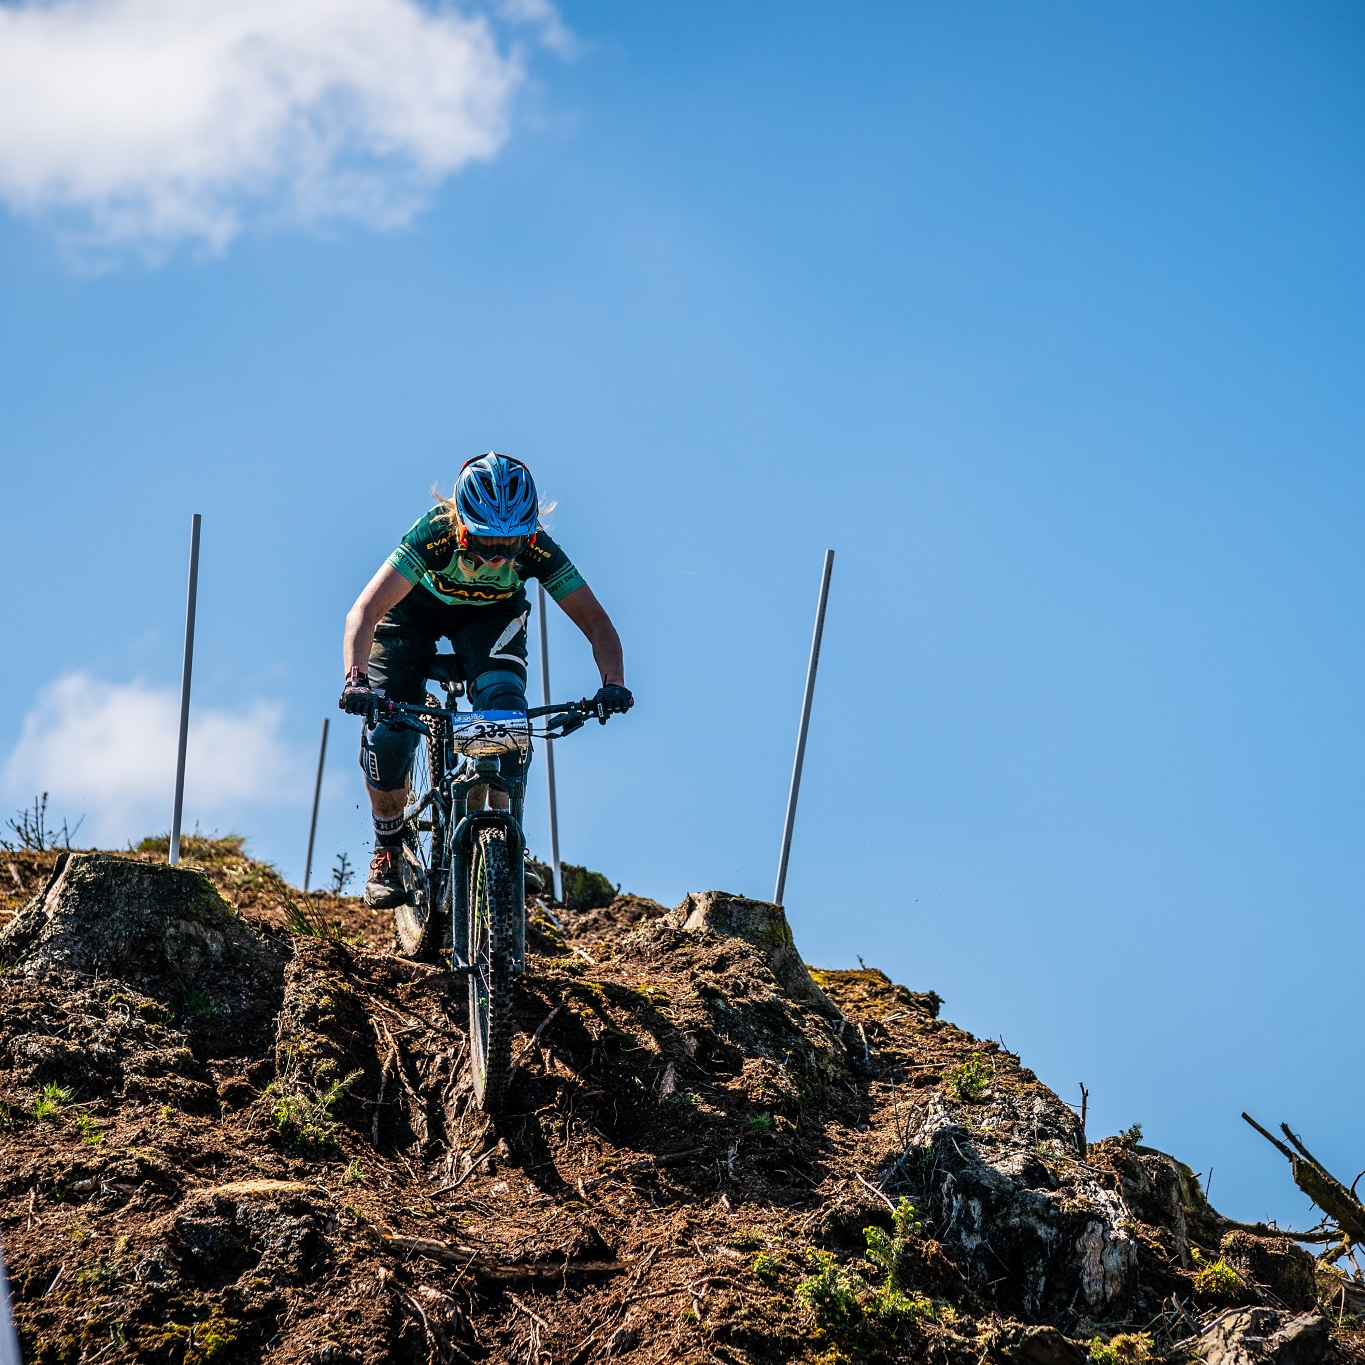 Smashing her way into first place down the steep technical PMBA Enduro course!